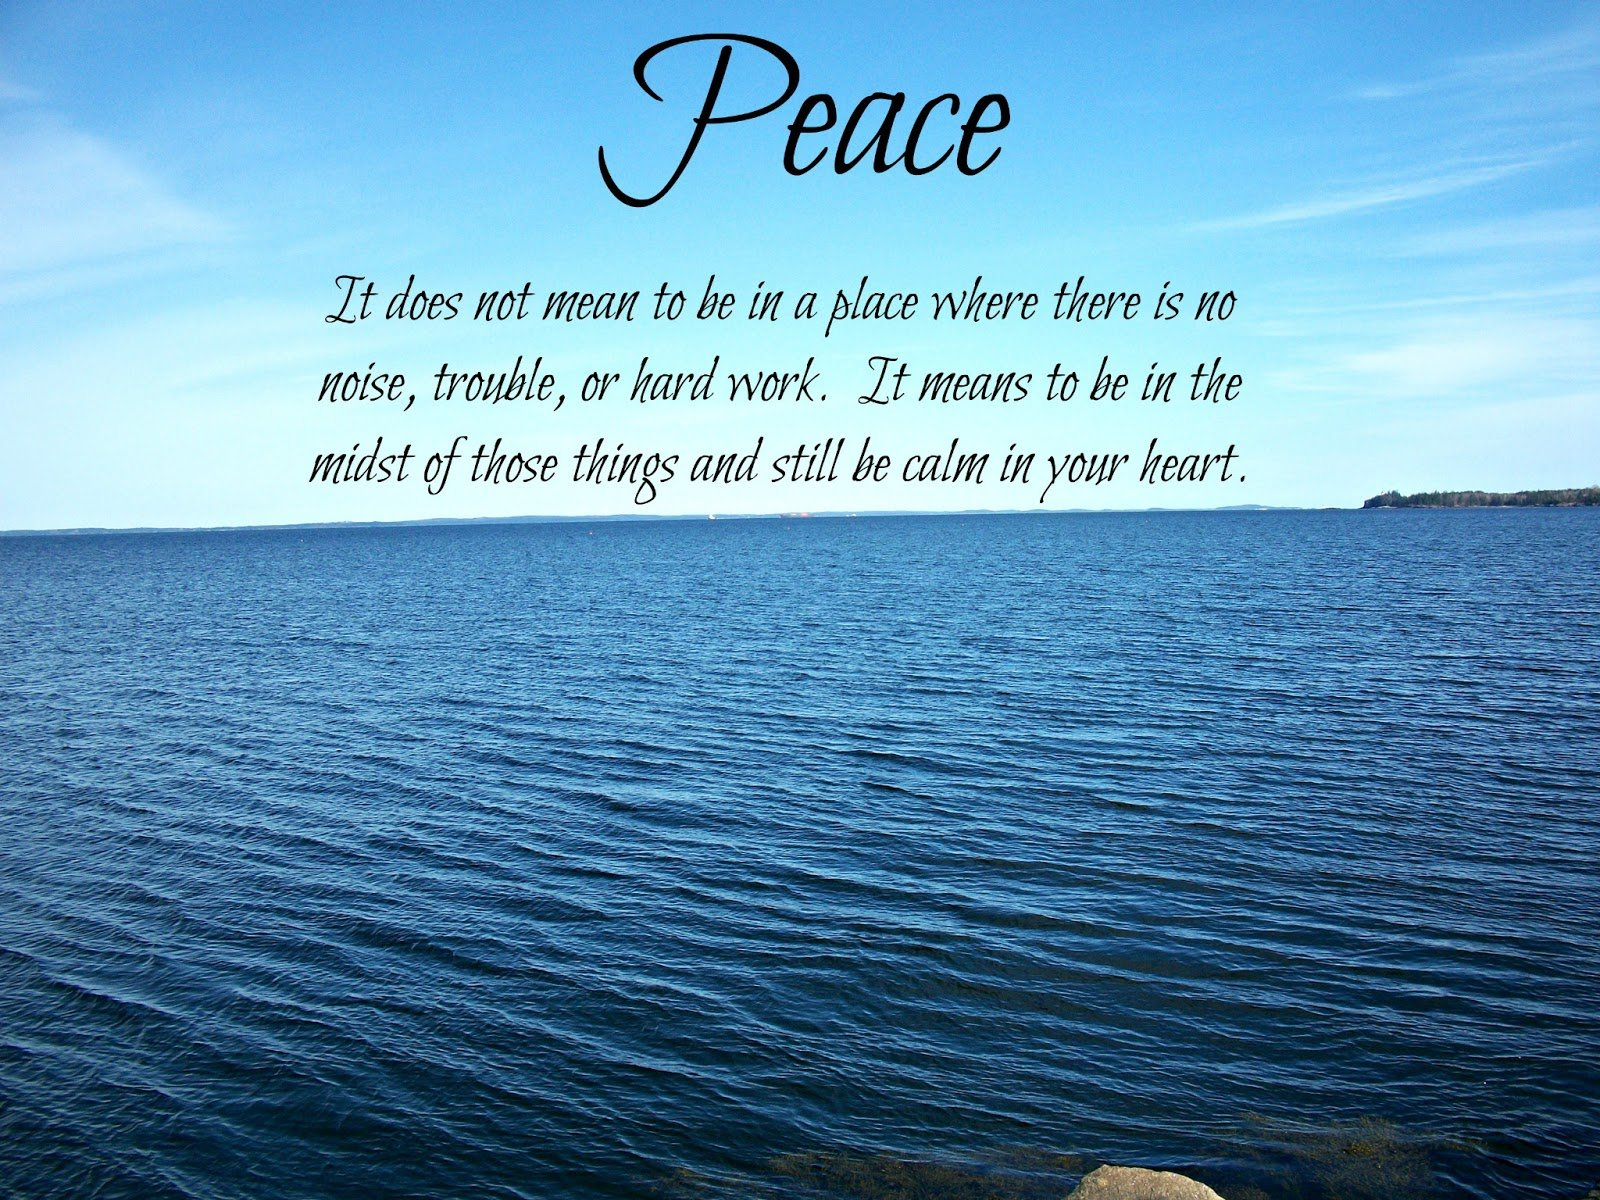 Peace Quotes And Sayings Quotesgram: Simple Peace Quotes. QuotesGram